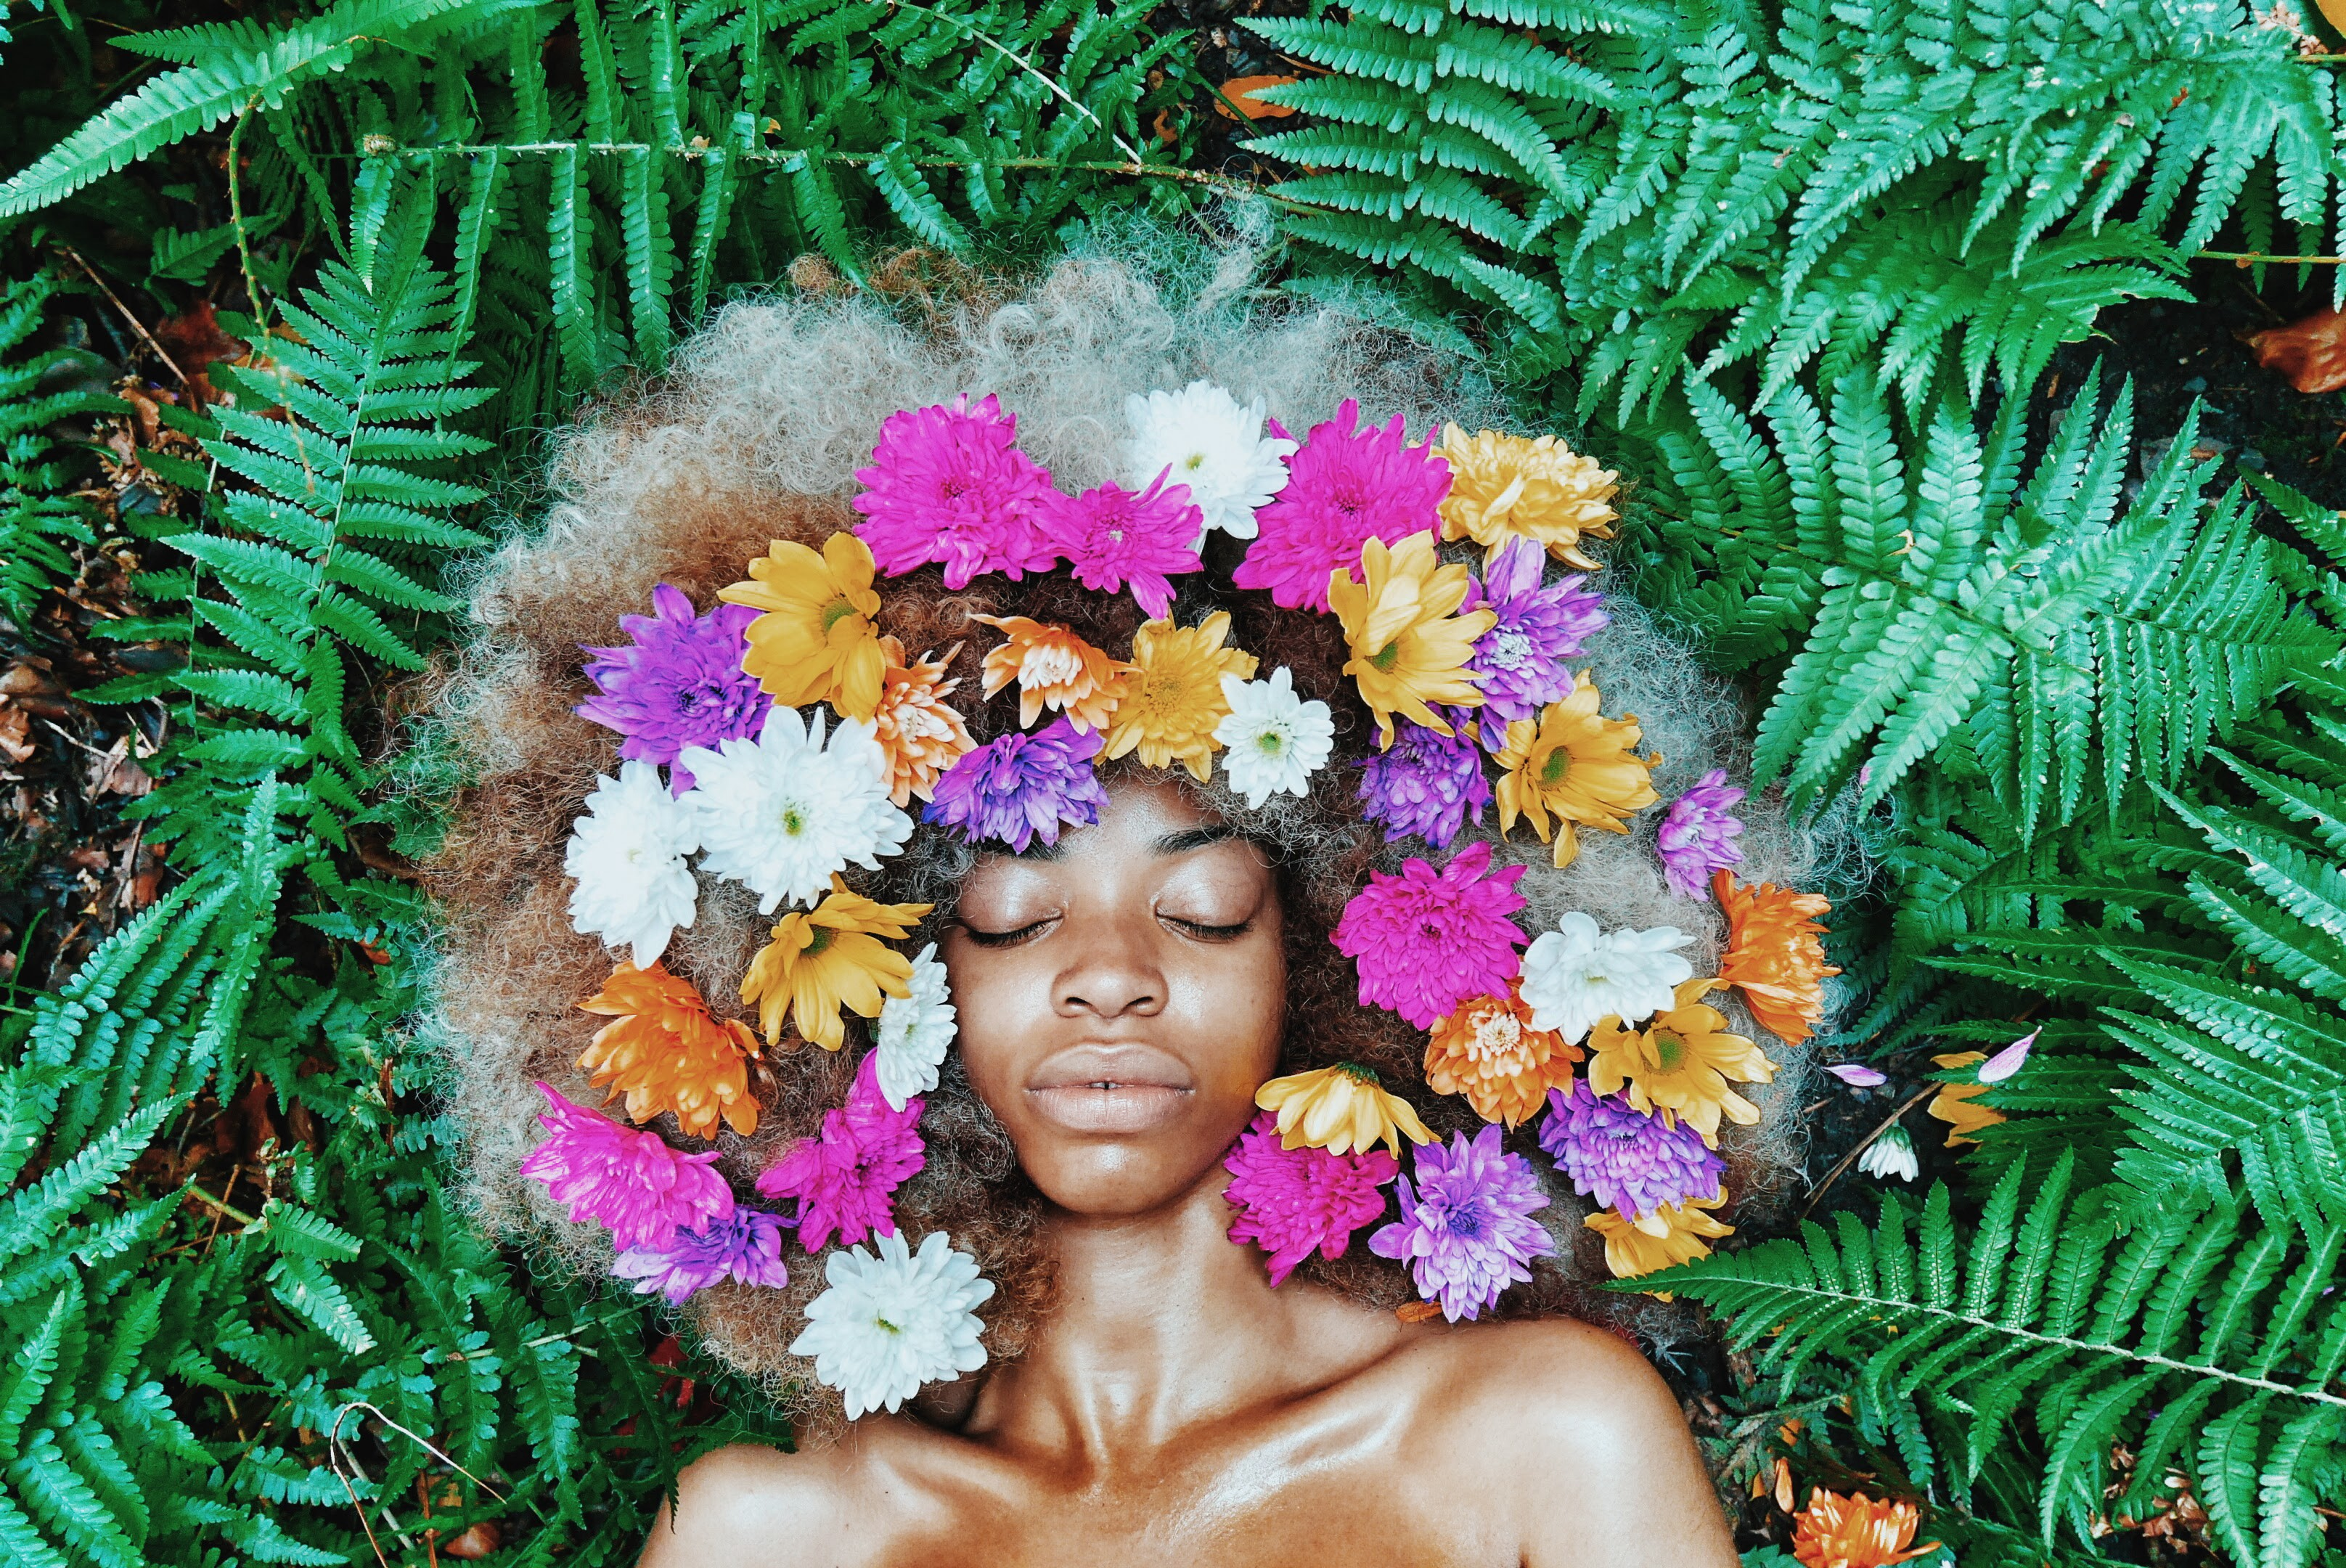 A photo of a Black woman with flowers in her hair against a leafy background.